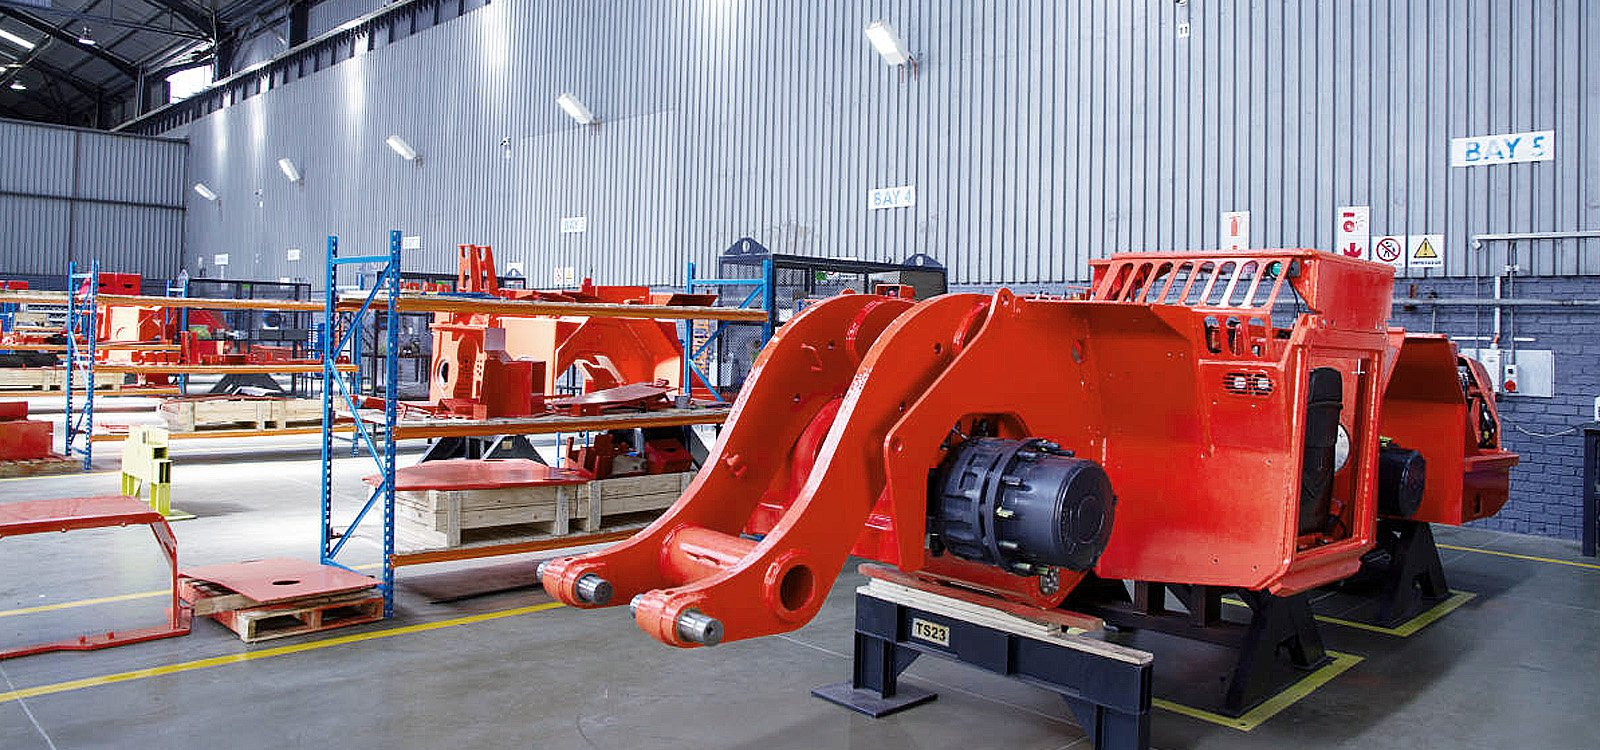 <p>The Sandvik LH115L low-profile loader, which will be manufactured at Jet Park, has been designed with the local market in mind, and is equipped to operate in the harshest conditions.</p>